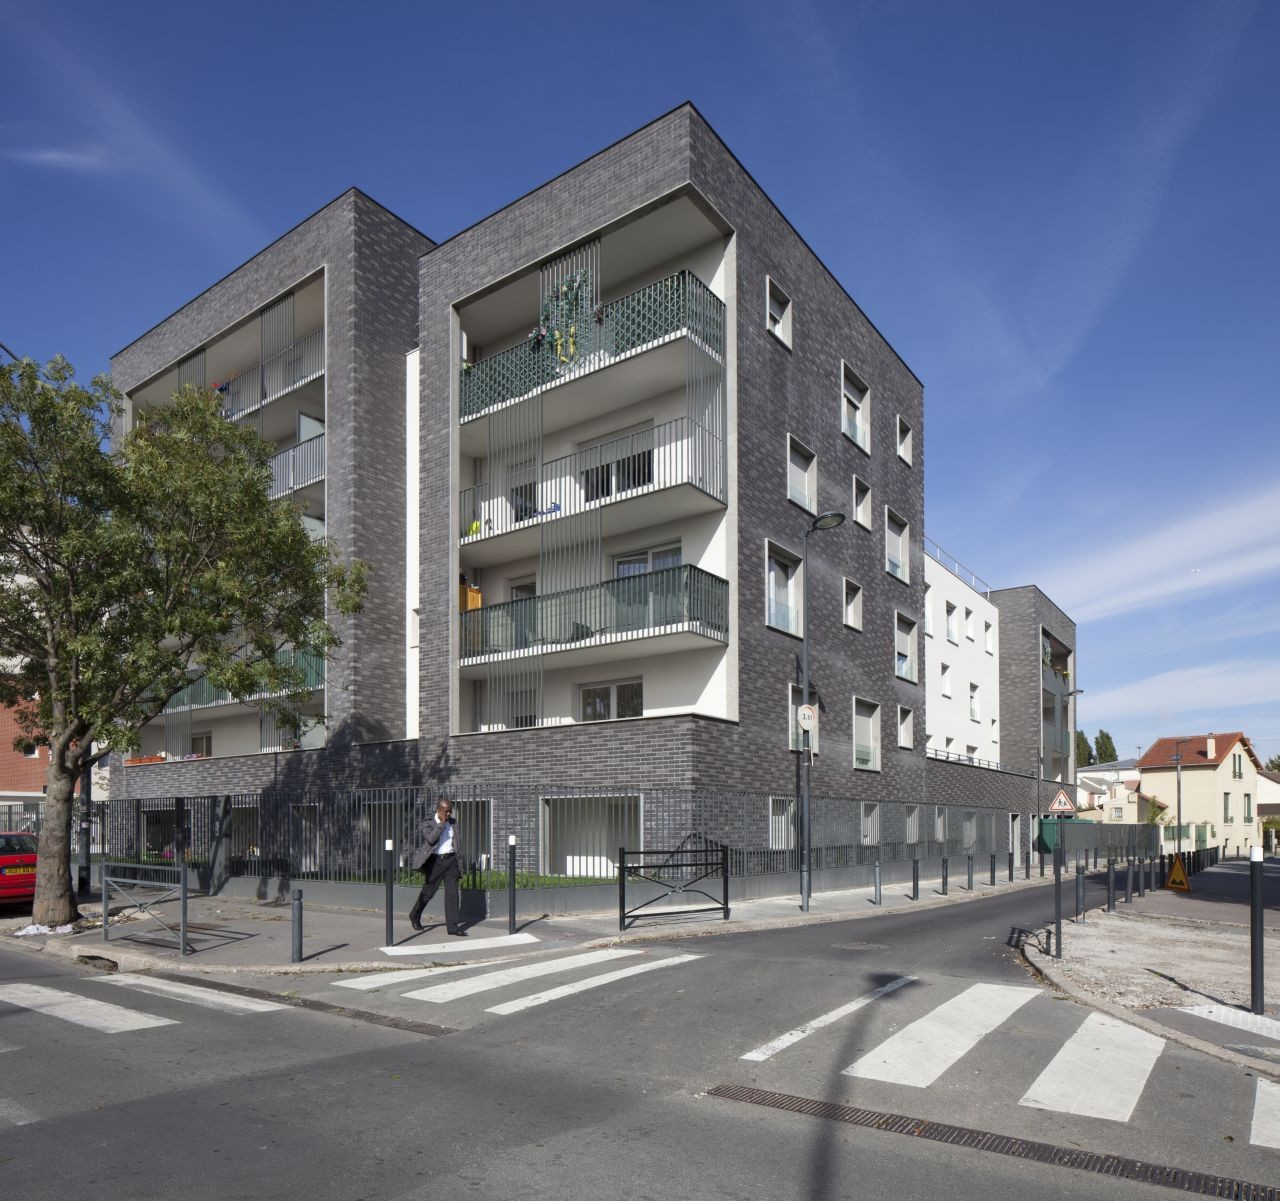 Saint Denis Housing / Ateliers O-S architectes, © Cecile Septet